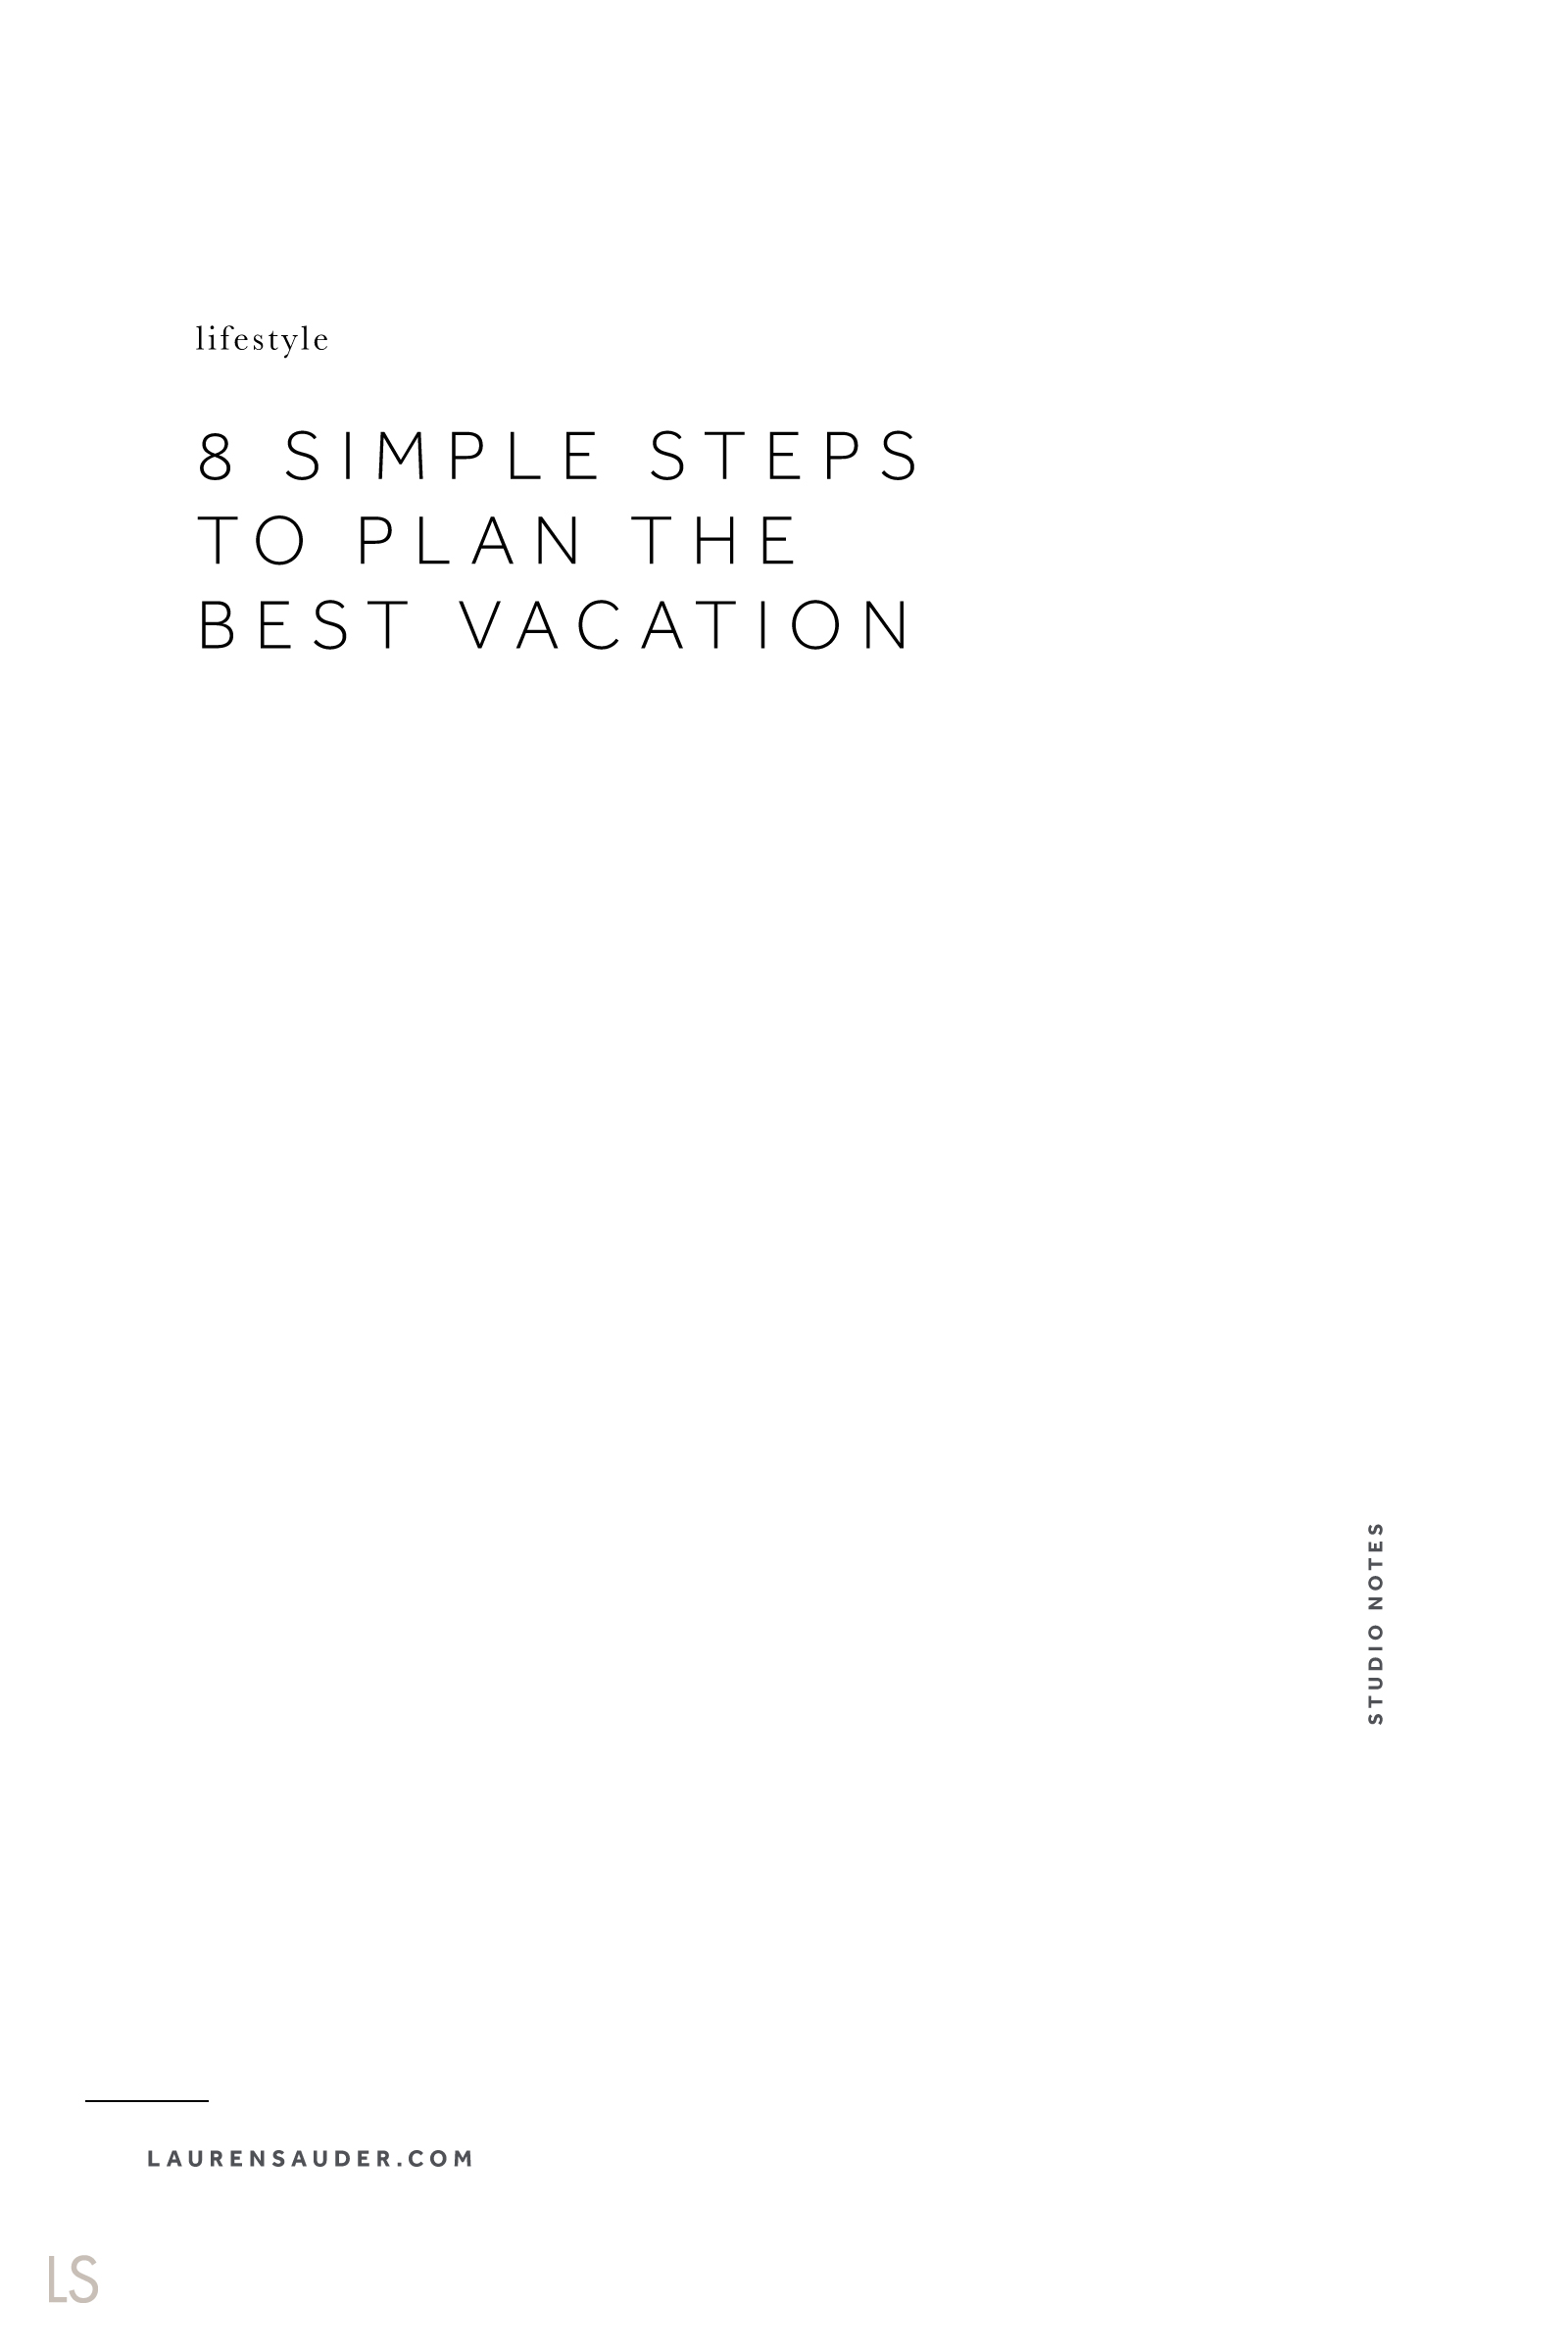 8 Simple Steps to Plan the Best Vacation - Lauren Sauder #vacation #vacationplanning #summervacation best vacation, summer vacation, summer trips, summer travel, travel planning, travel tips, vacation tips